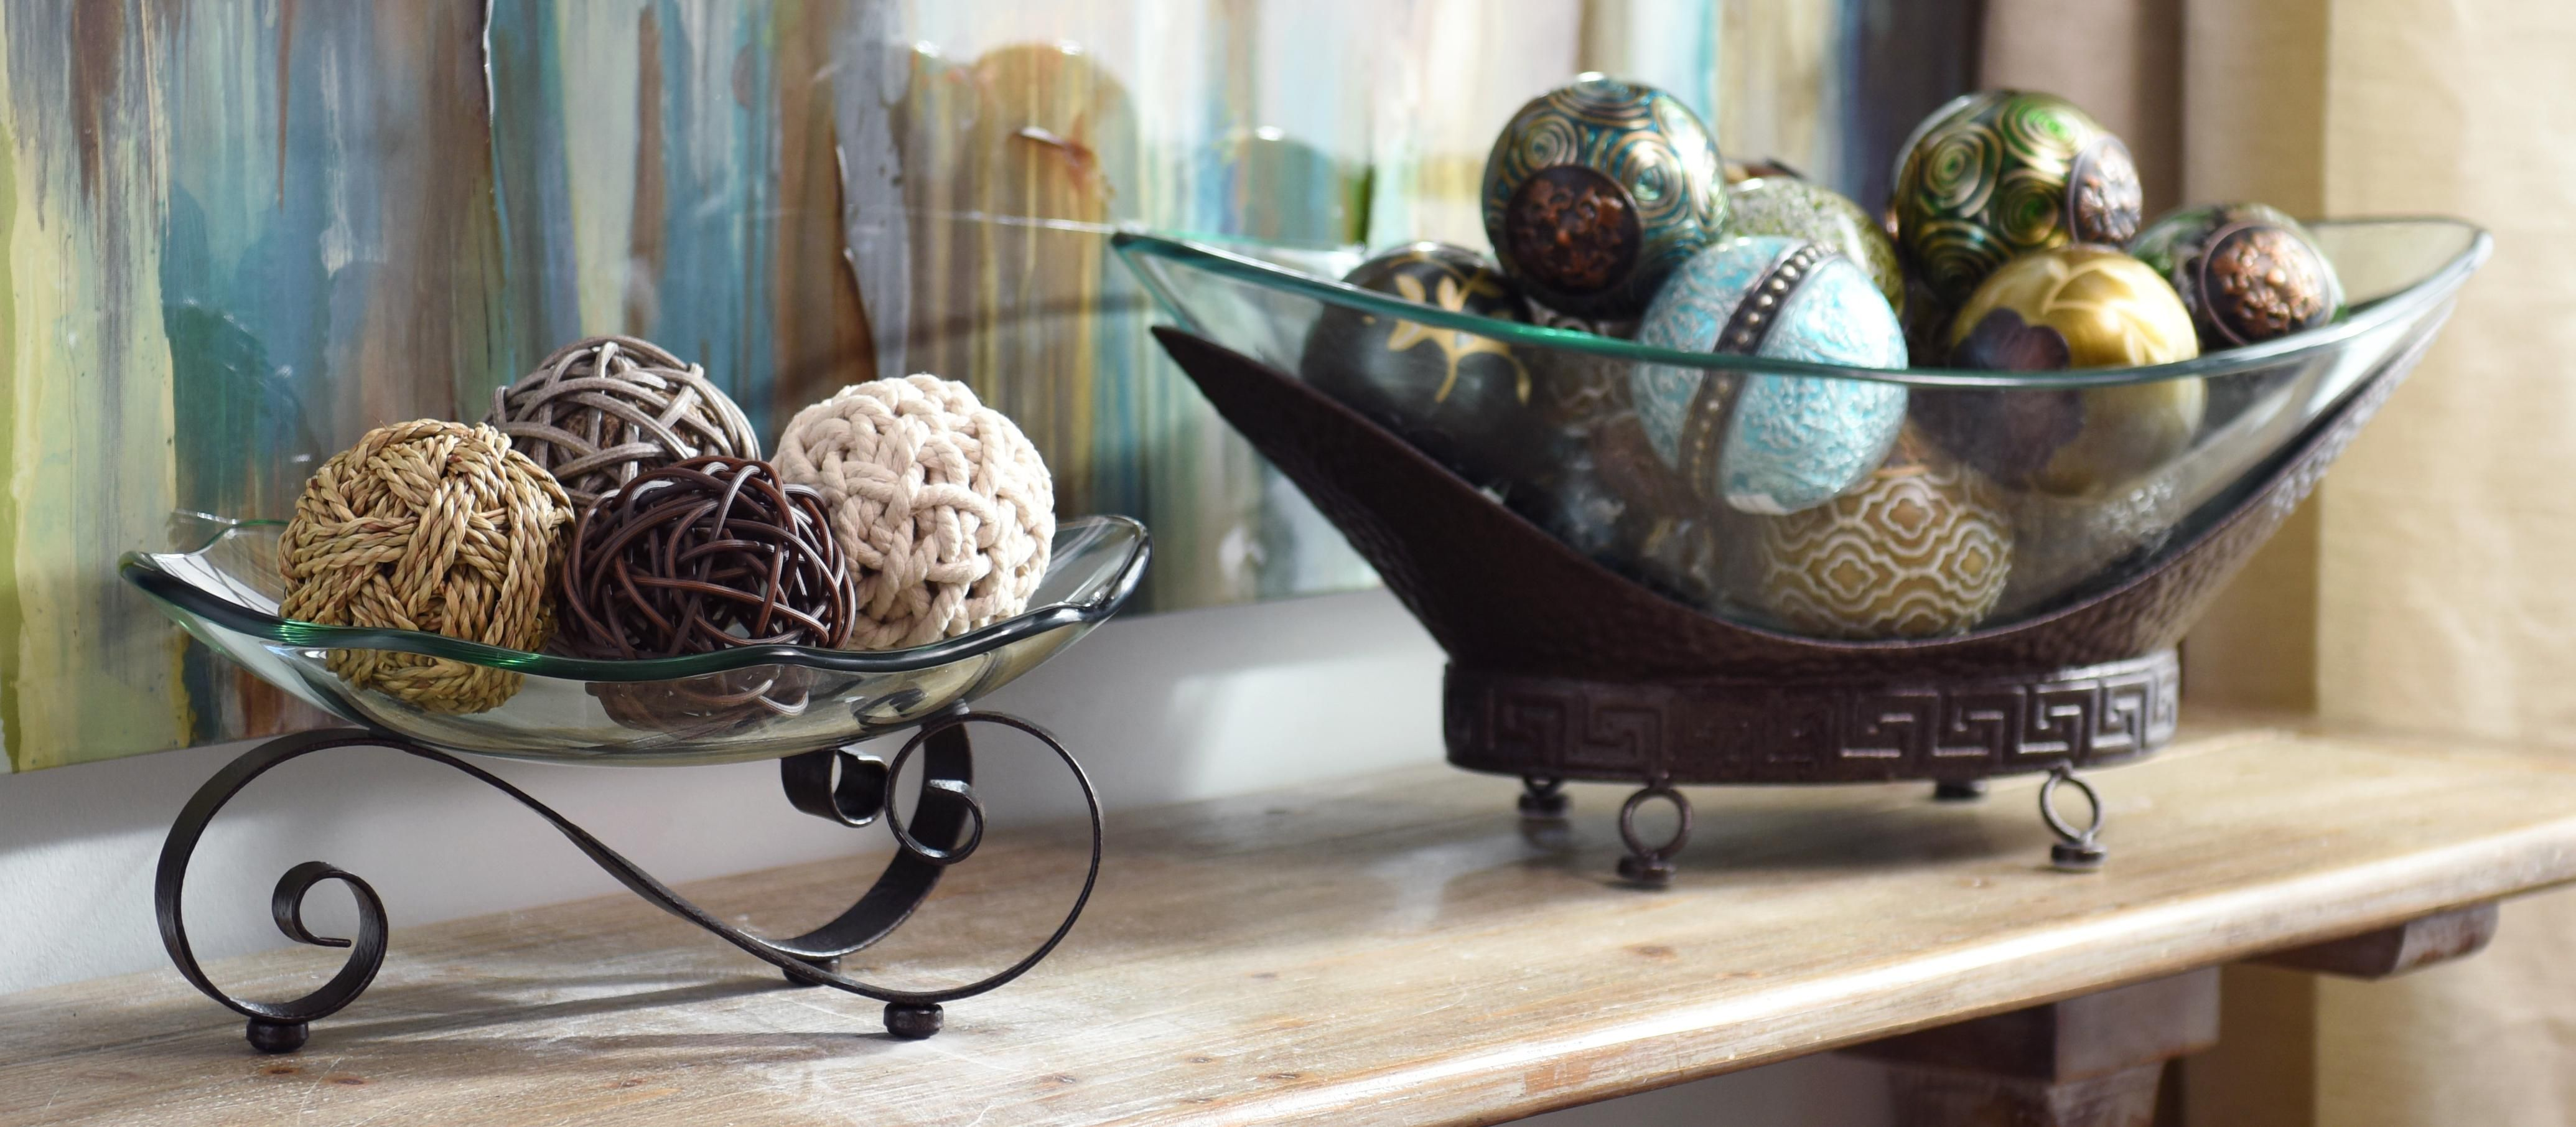 Discover decorative bowls and orbs that fit your home